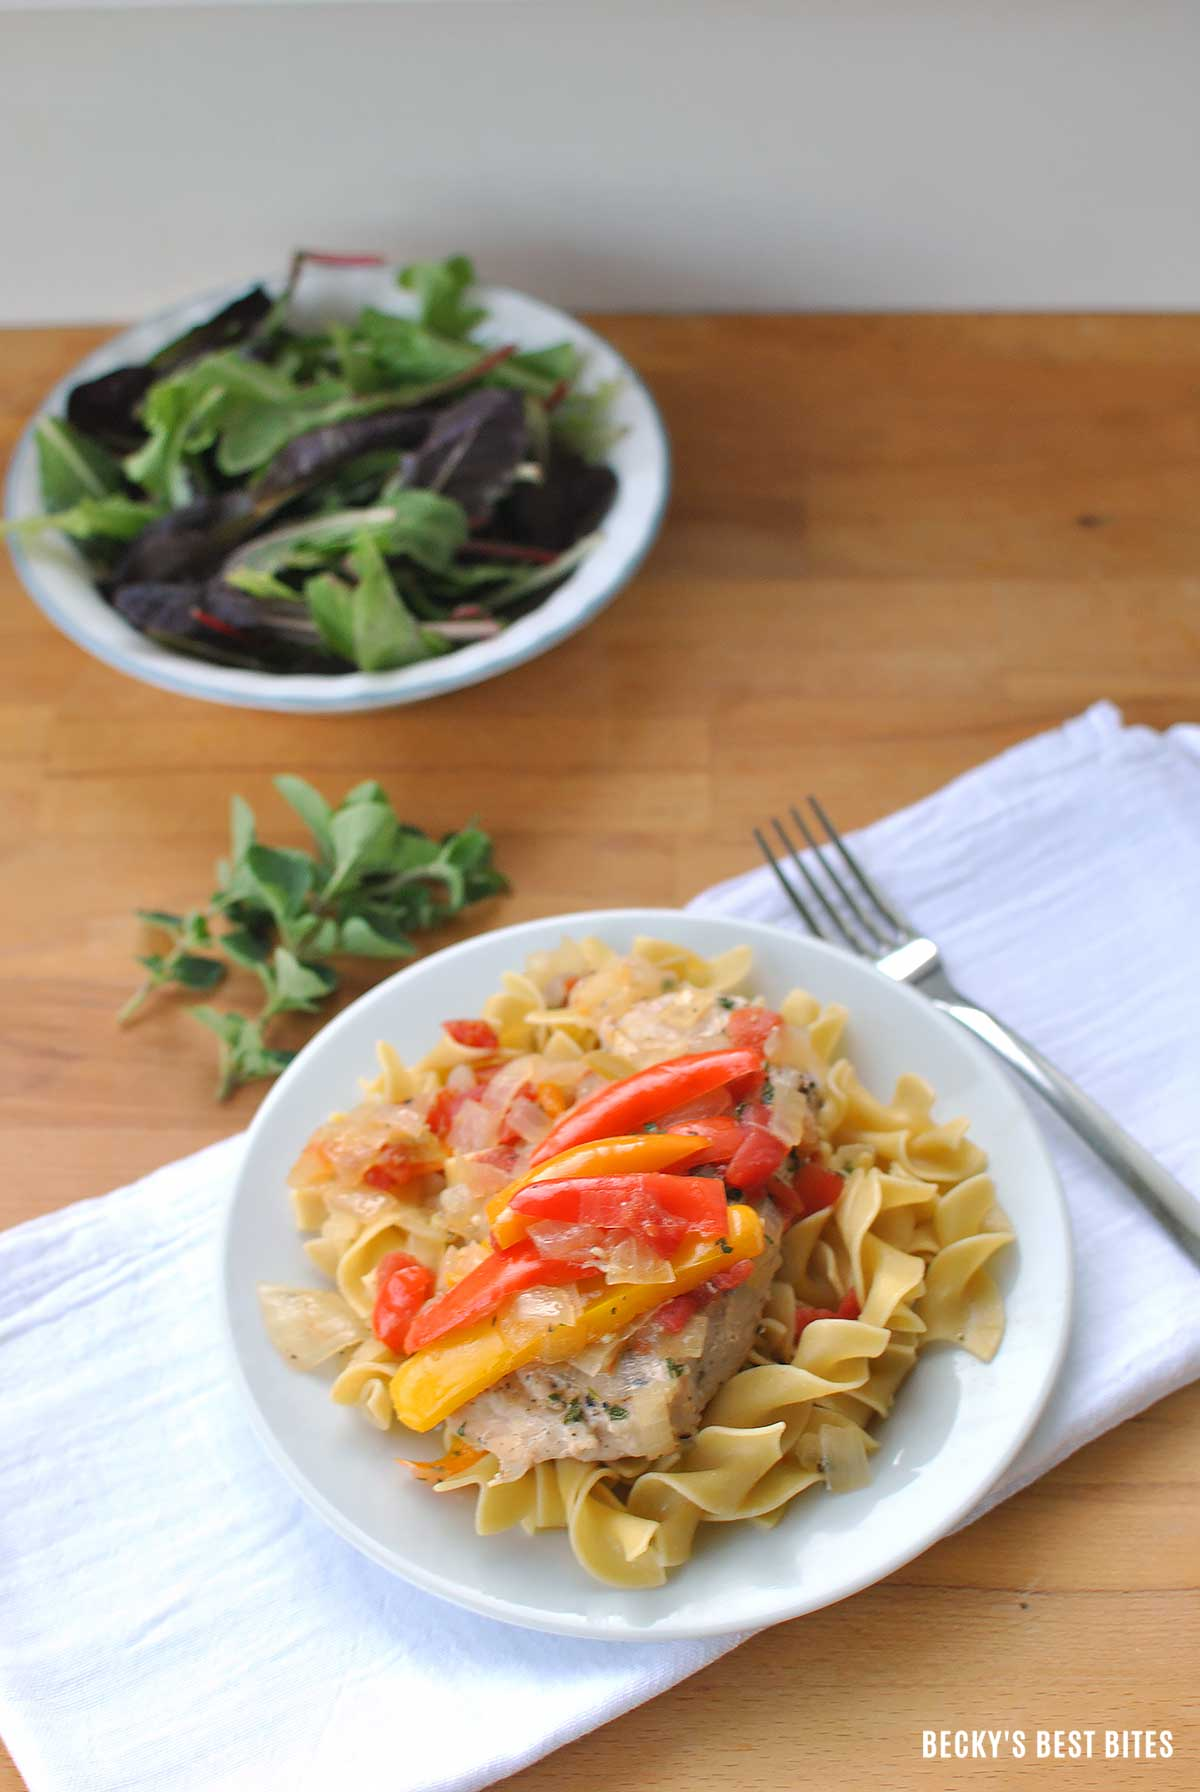 Lean Pork and Sweet Peppers on Noodles is the perfect healthy weeknight dinner recipe. On the table in 30 minutes or less, using simple & fresh ingredients. | Becky's Best Bites